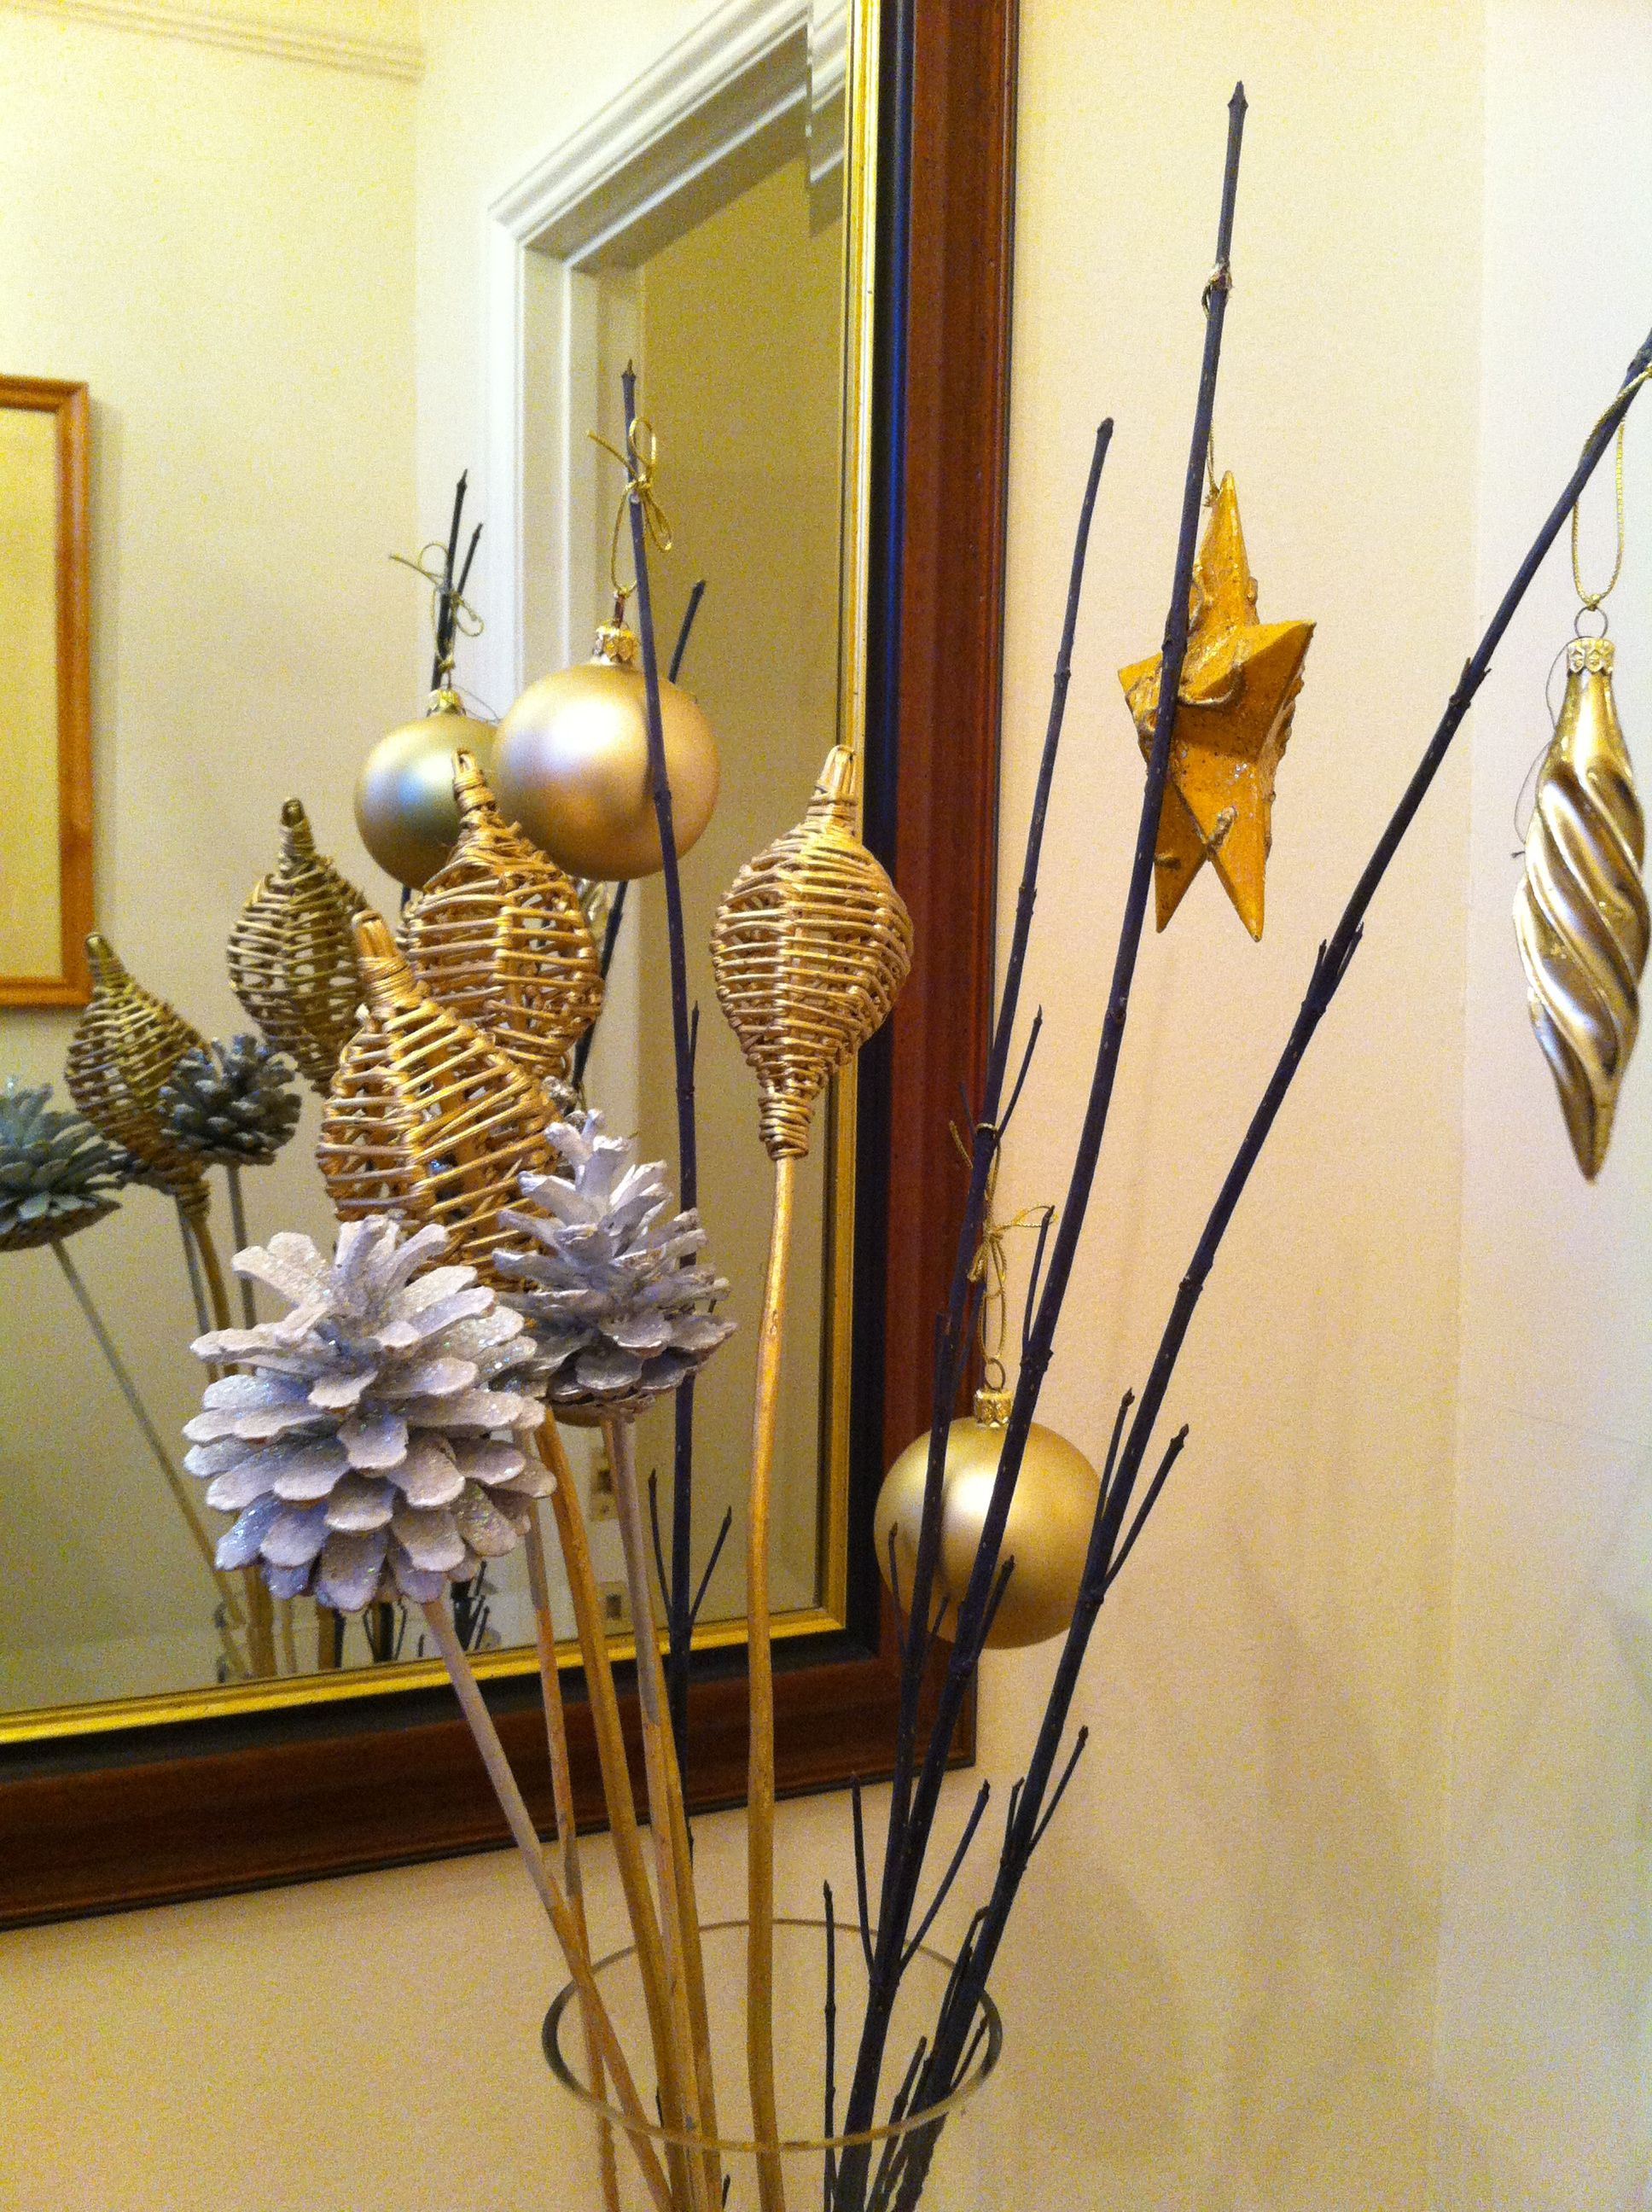 Take Some Baubles, Stars And Other Decorations, Glue To Long